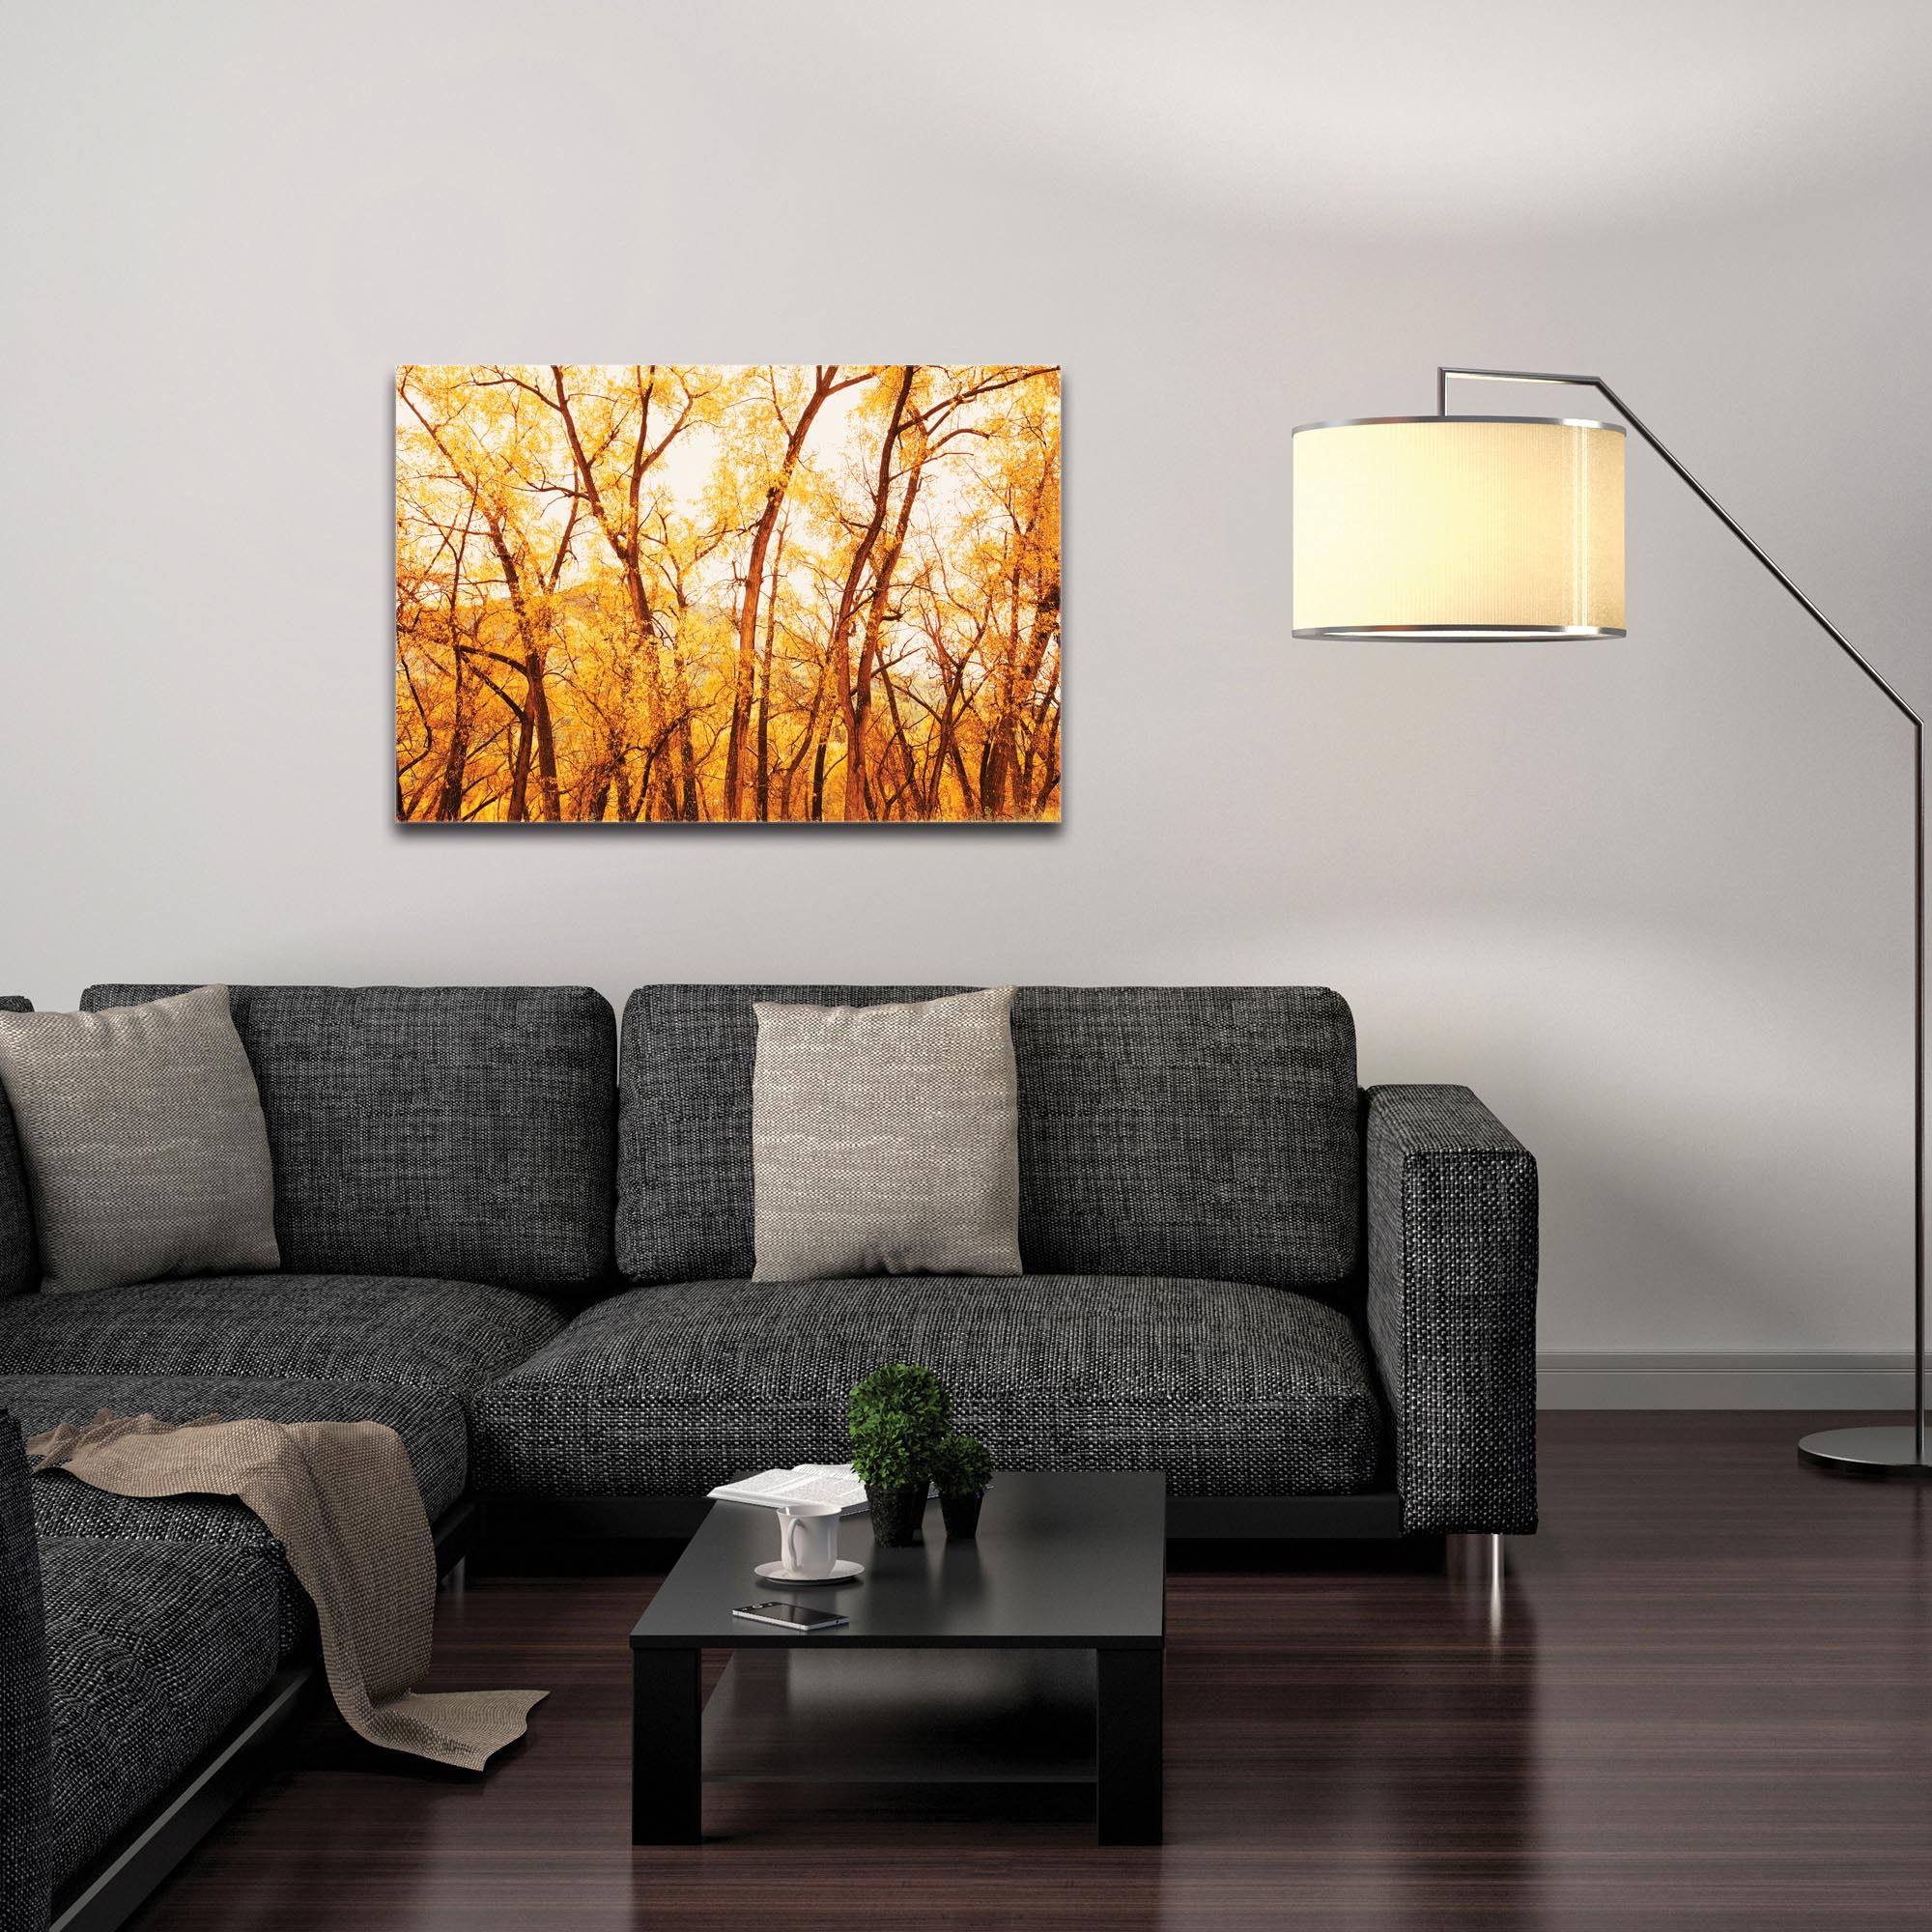 Landscape Photography 'Fall Trees' - Autumn Nature Art on Metal or Plexiglass - Image 3